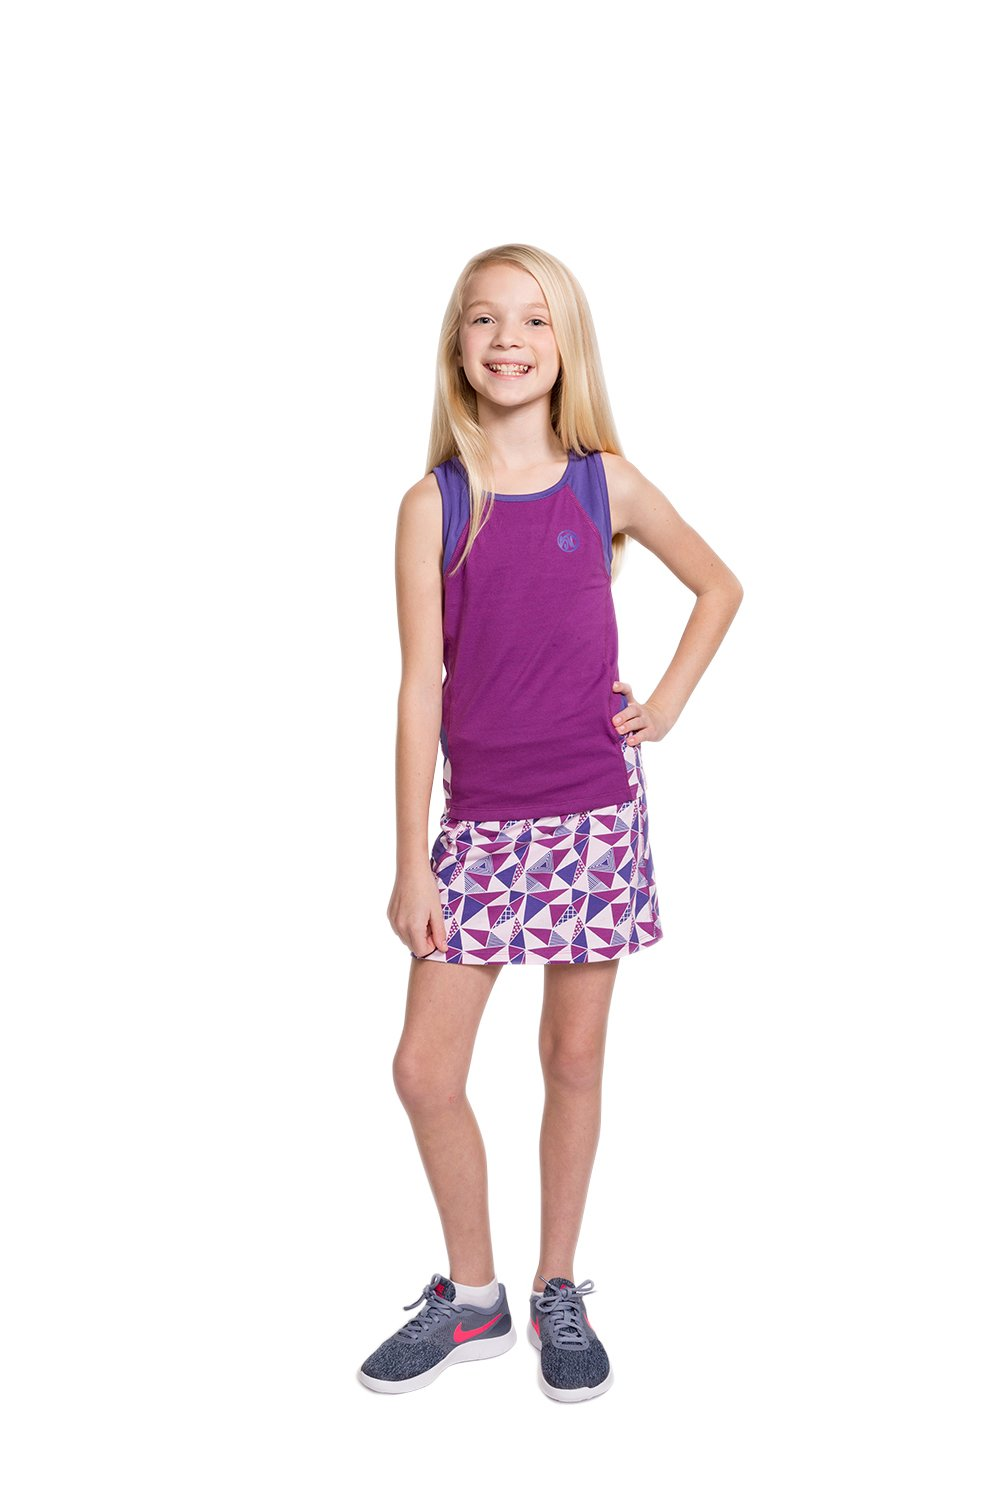 Street Tennis Club Girls Tennis & Golf Tank and Skirt Set with Built in Shorts Sparkaling Grape/Purple Size S